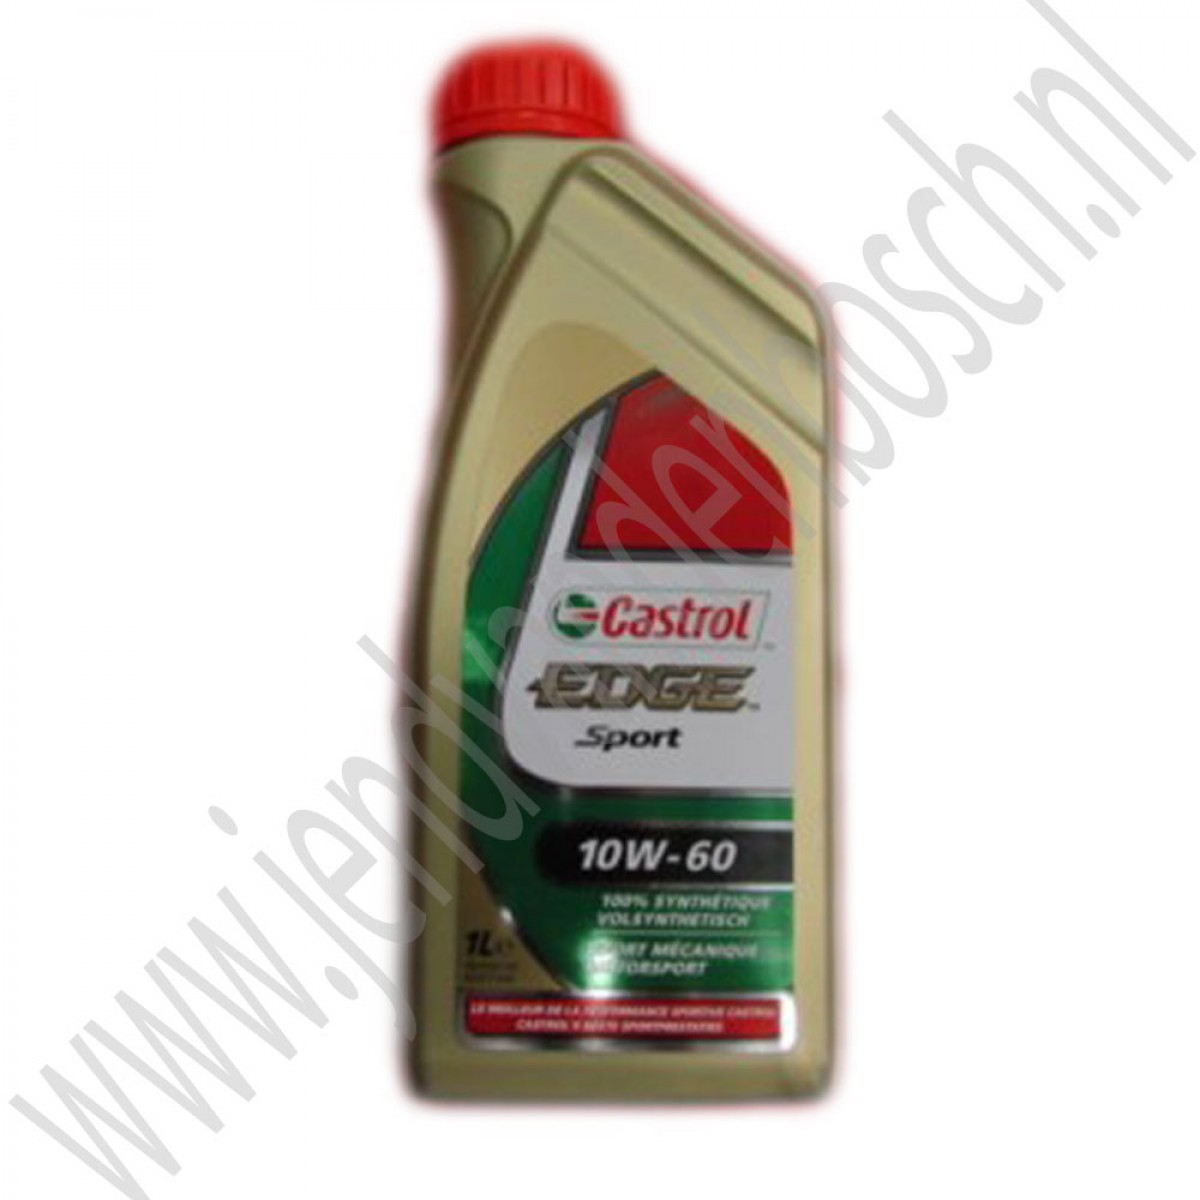 j d van den bosch 1 liter castrol edge sport 10w 60. Black Bedroom Furniture Sets. Home Design Ideas